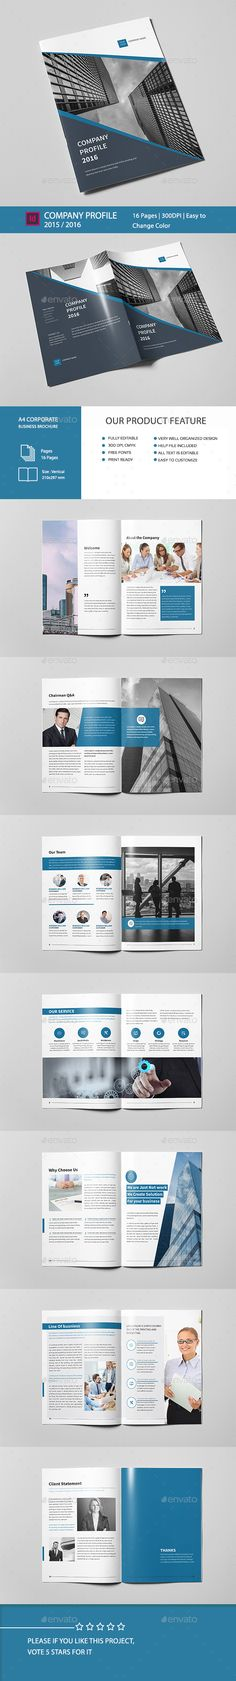 Company Profile Brochure 16 Pages A4 Template InDesign INDD. Download here: http://graphicriver.net/item/company-profile-brochure-16-pages-a4/15737253?ref=ksioks